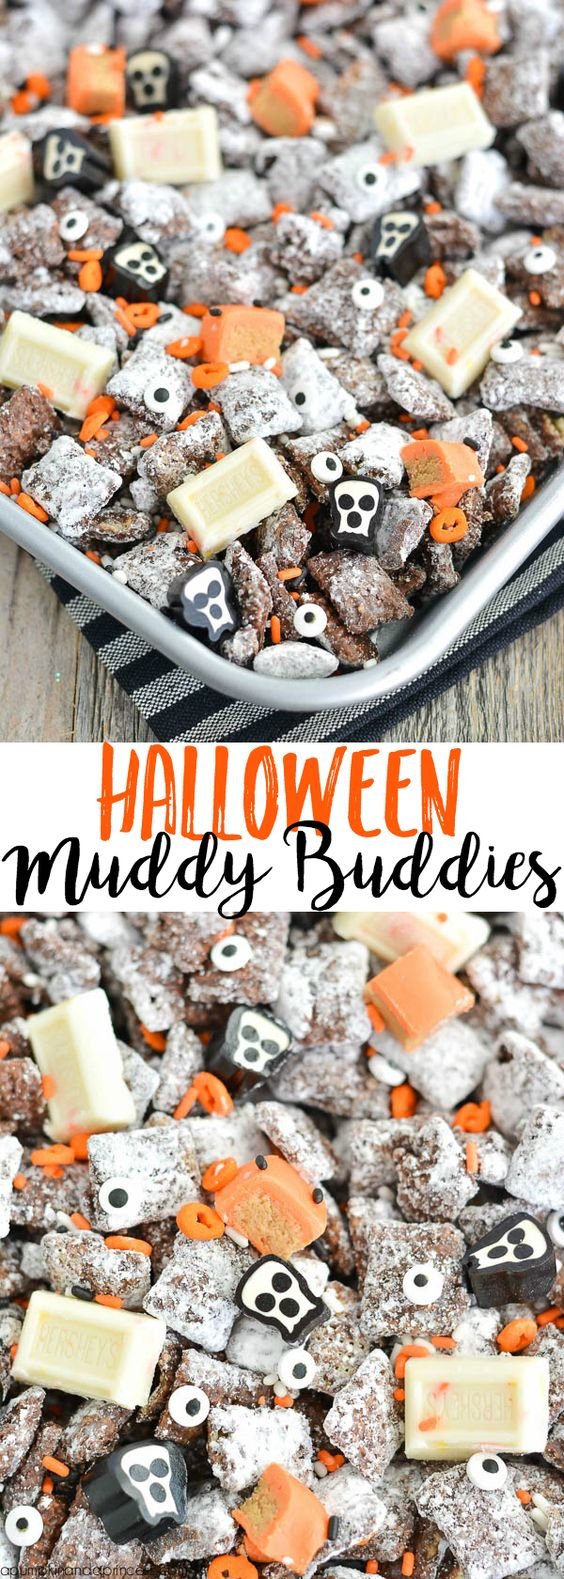 HALLOWEEN MUDDY BUDDIES – looking for an easy Halloween treat? This muddy buddies recipe is great for a Halloween party or spooky movie night!